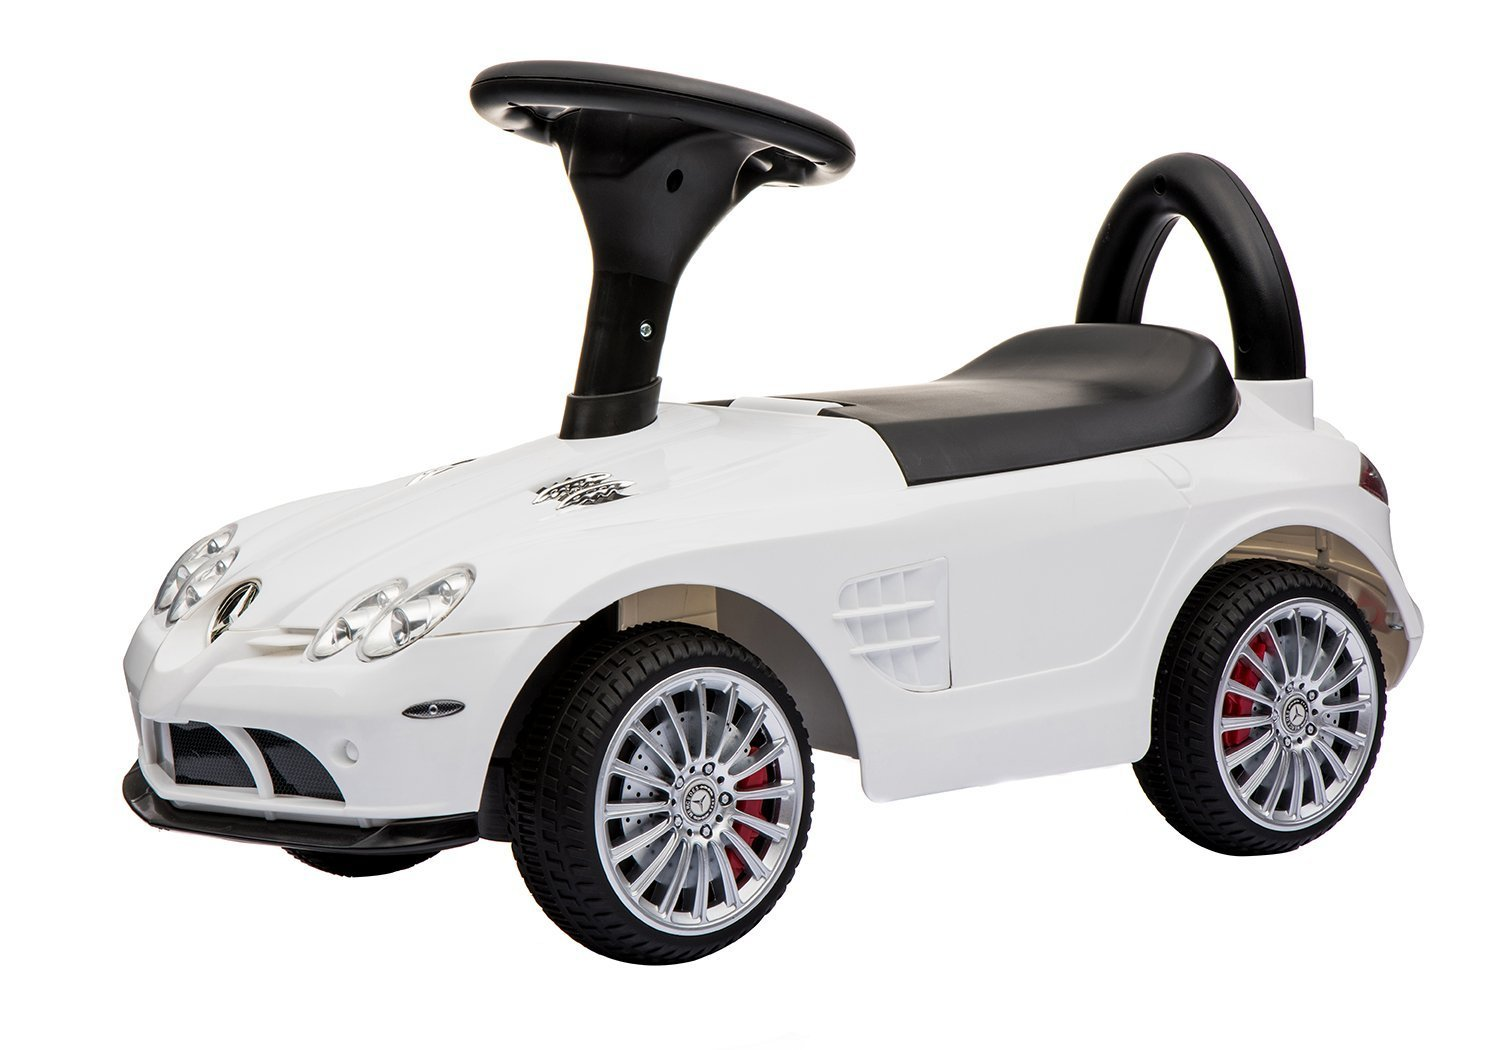 Buy-Hive Kids Ride On Car Foot to Floor Mercedes-Benz Riding Push Toy Car Gift by